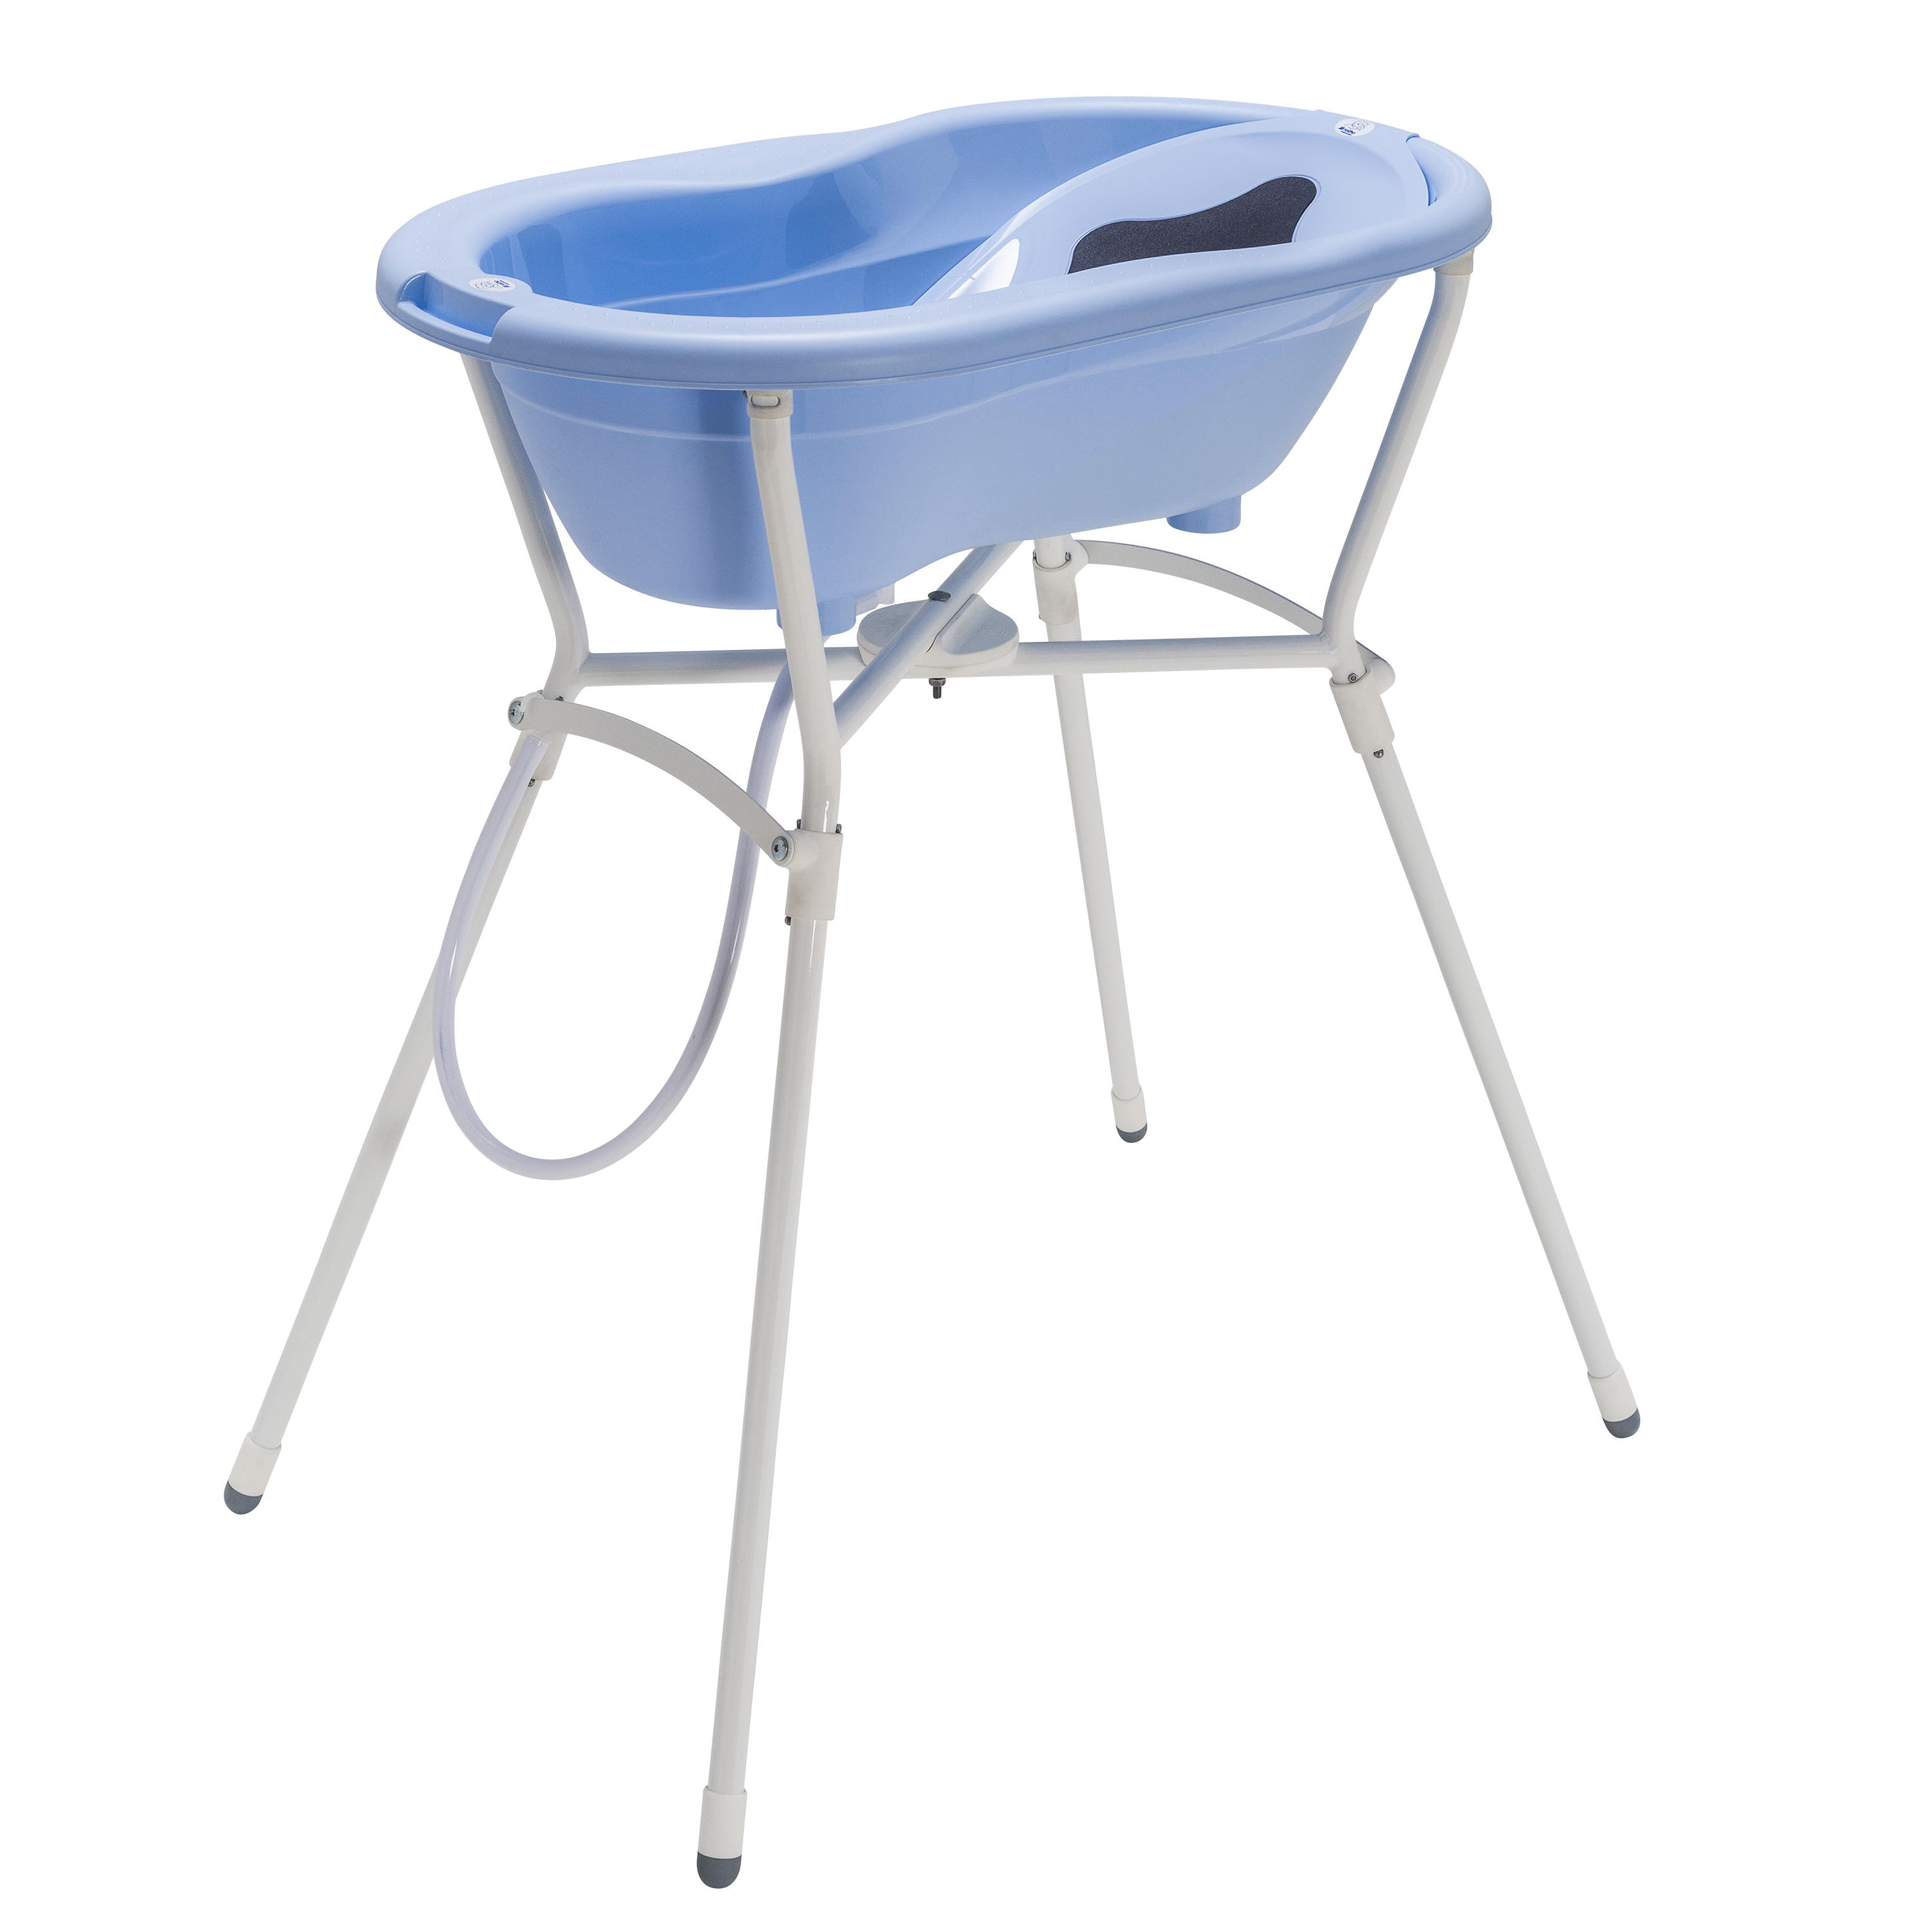 Baby Bath Tub With Stand.Rotho Ideal Bathing Solution Top With Foldable Bathtub Stand Sky Blue